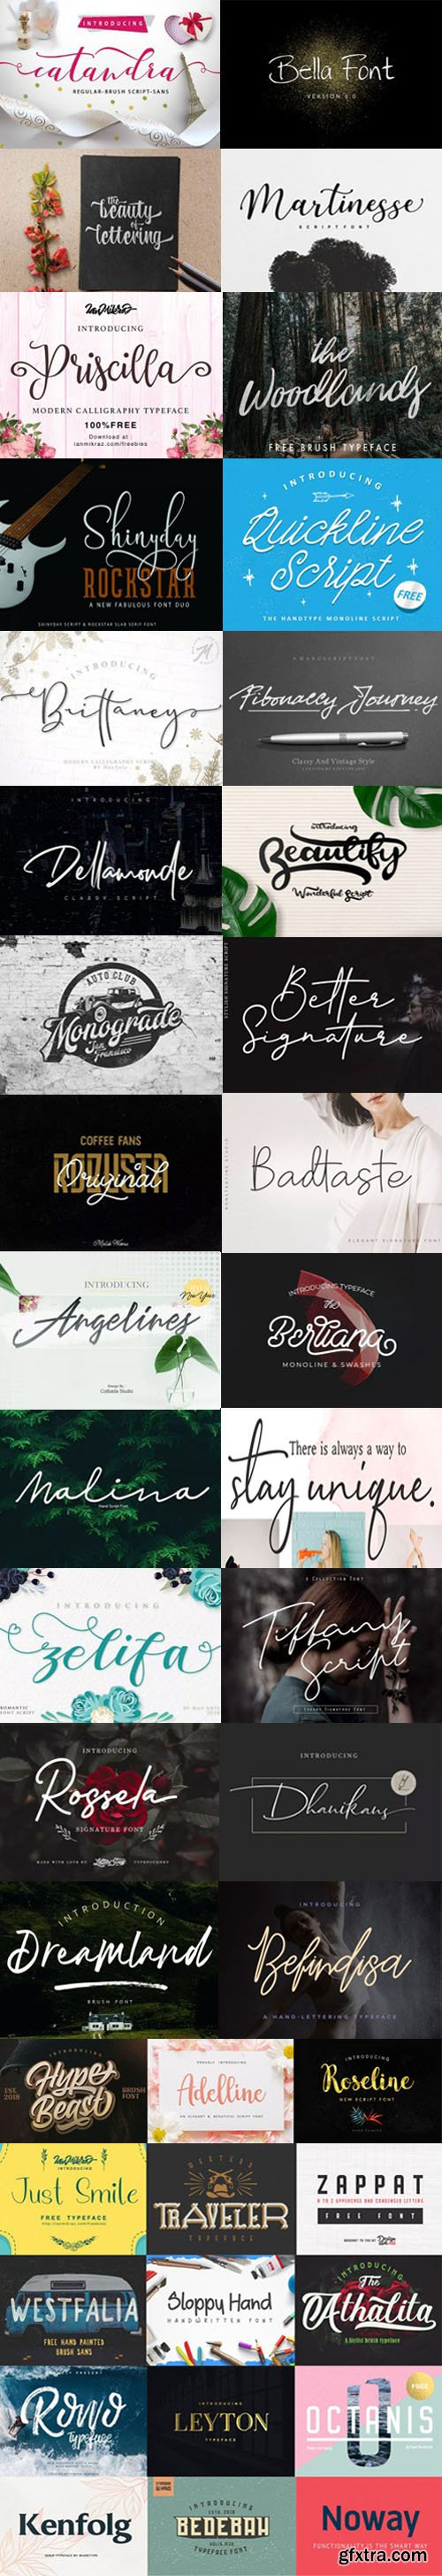 43 Beautiful Fonts Collection for Designers